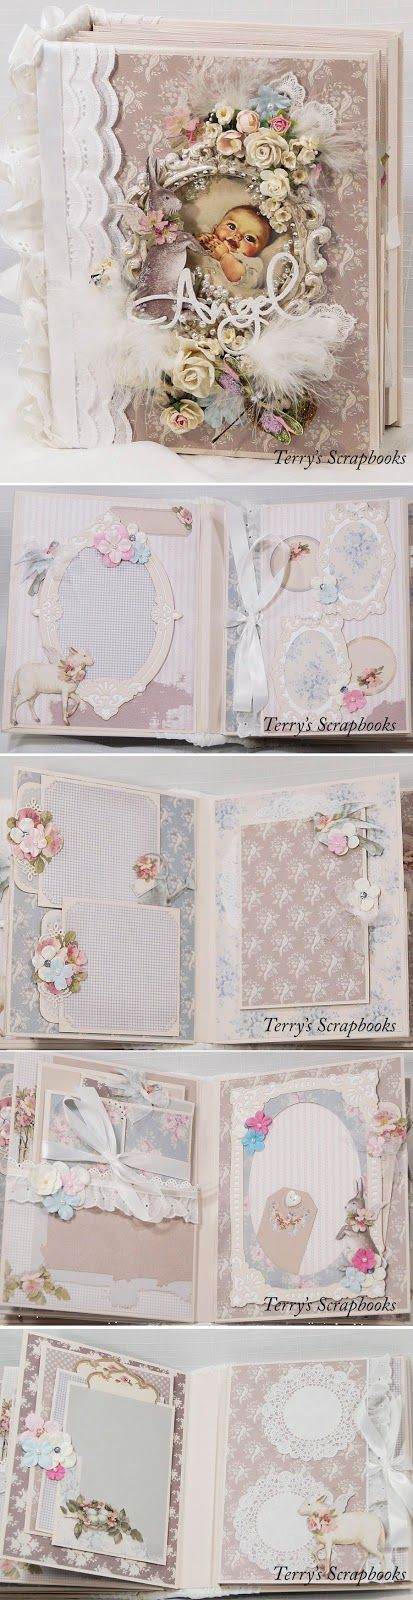 Terry's Scrapbooks: Tilda Baby Mini Album